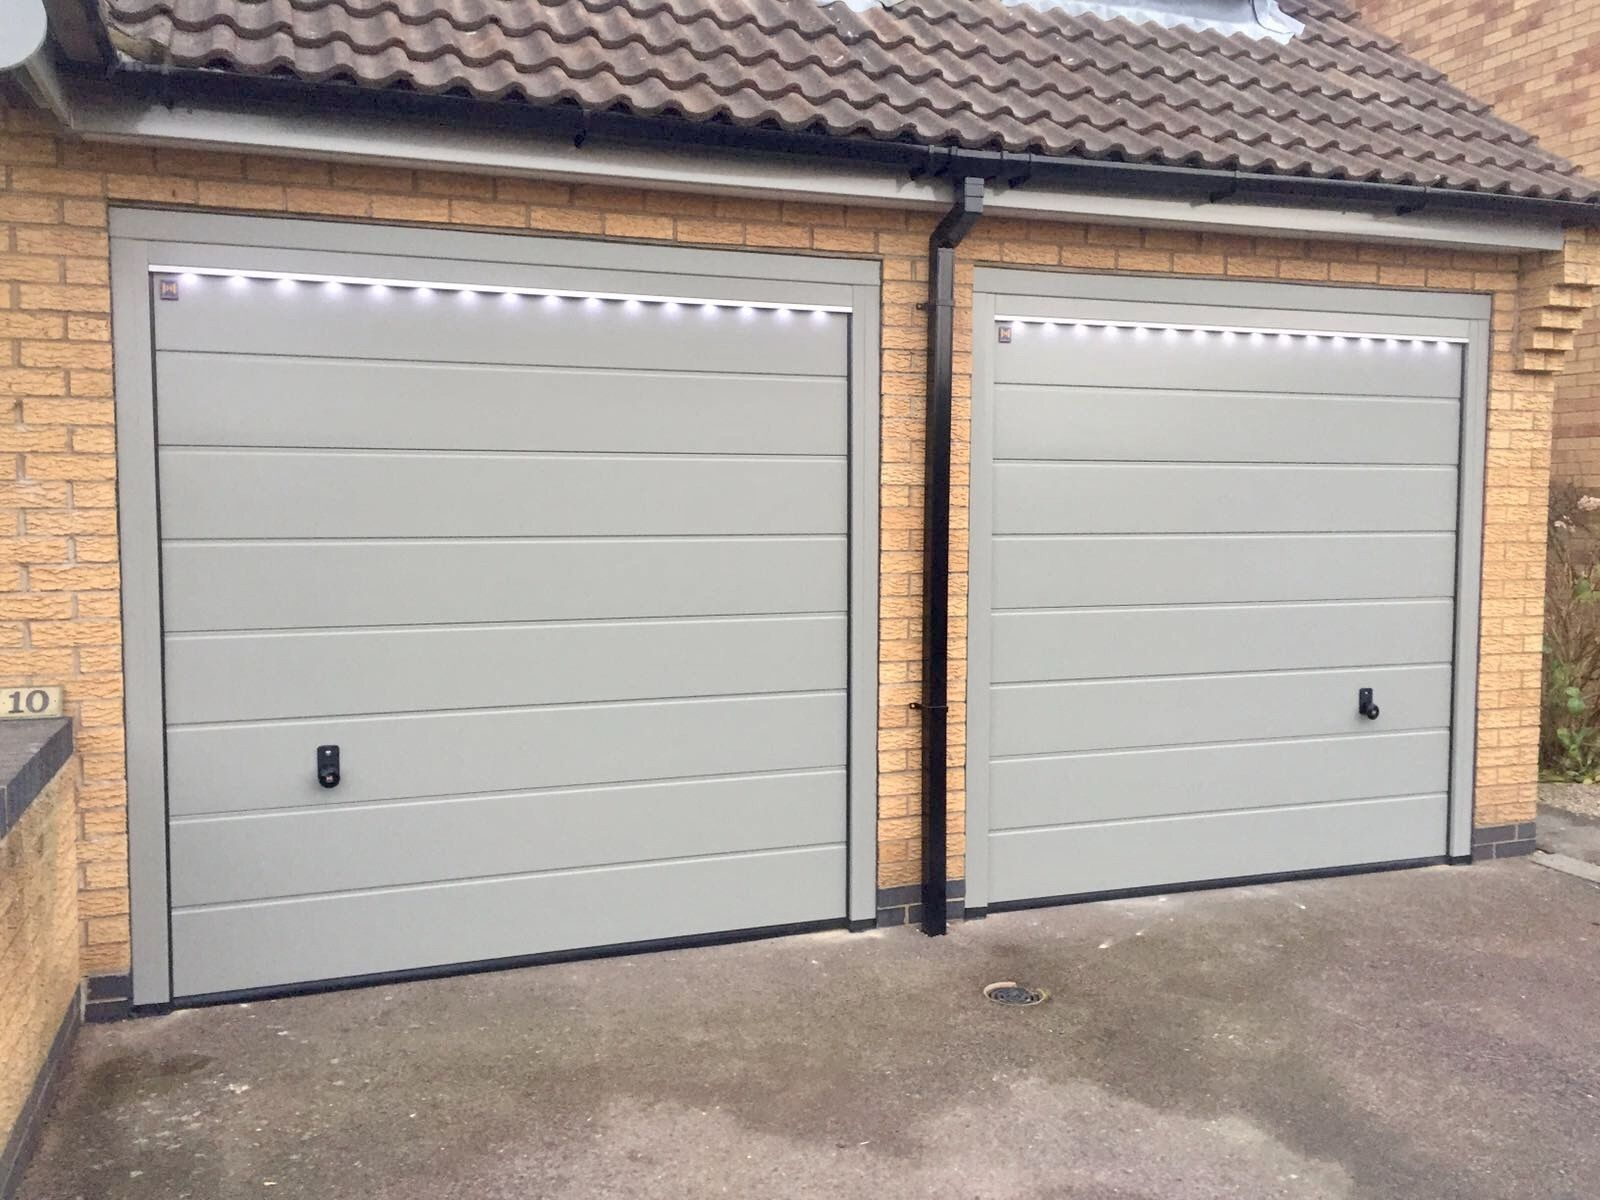 Hormann m rib sectionals silkgrain ral 7030 garage doors cms garage doors photo gallery supplied installed by our own team of fitters including insulated roller shutter sectional side hinged up over doors rubansaba